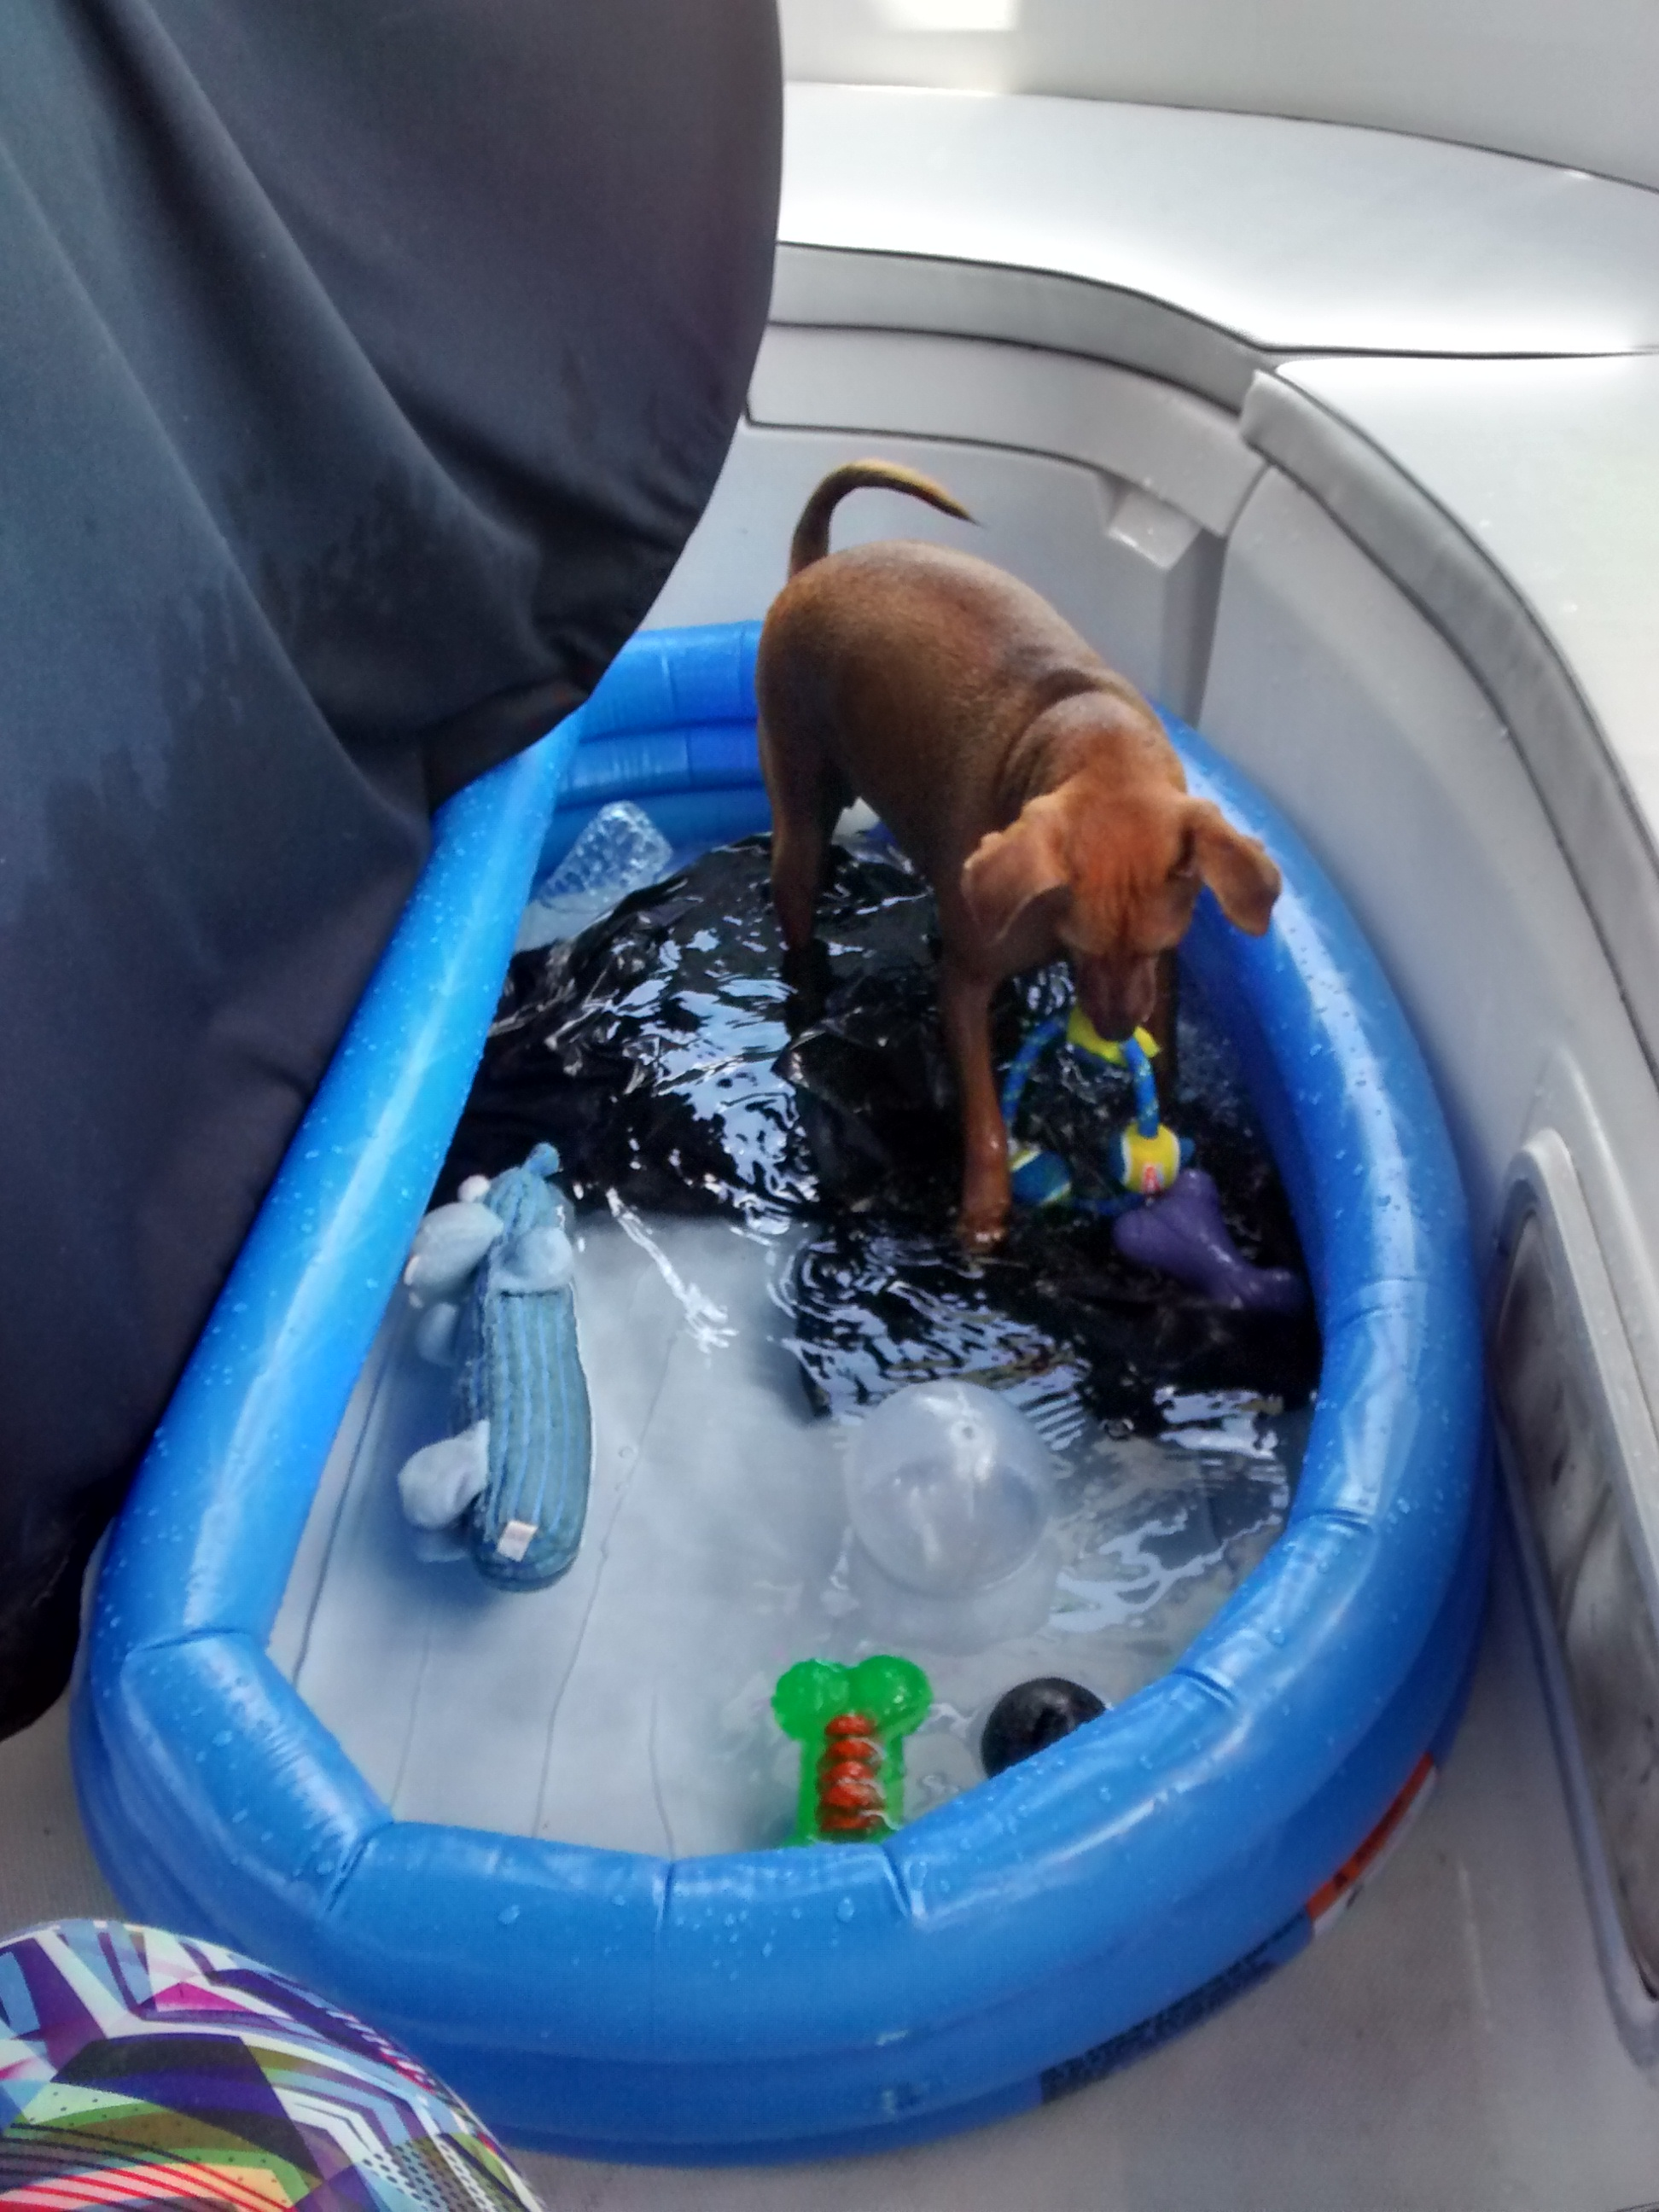 Kiddie Pool Not Just For Kids